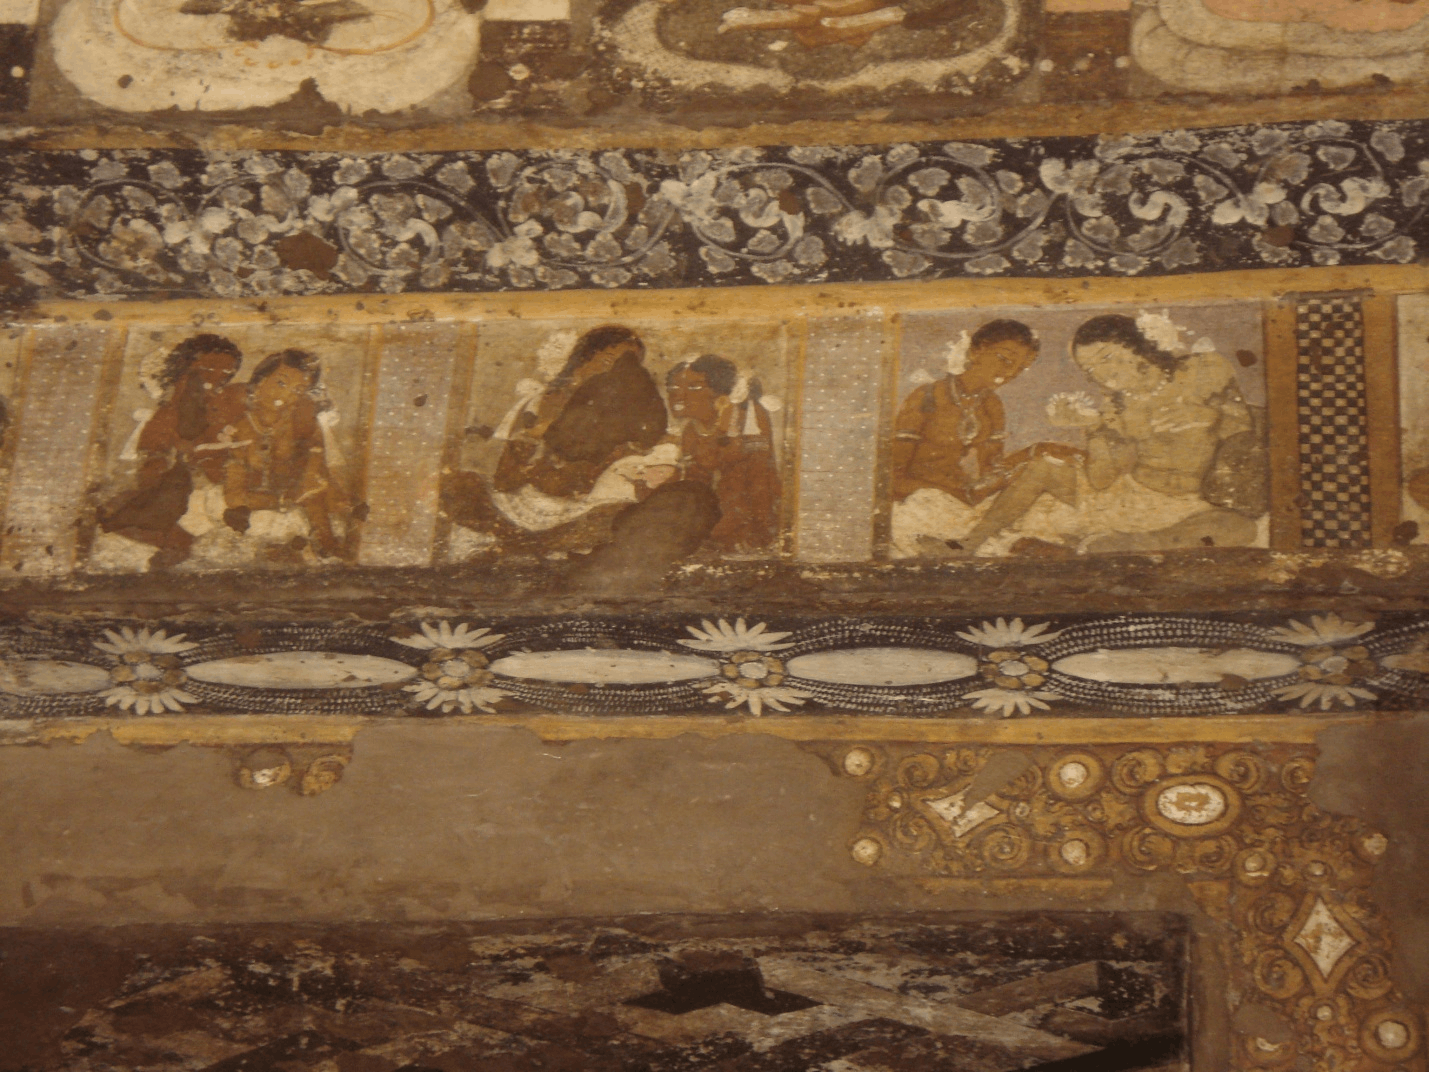 Paintings of Ajanata caves